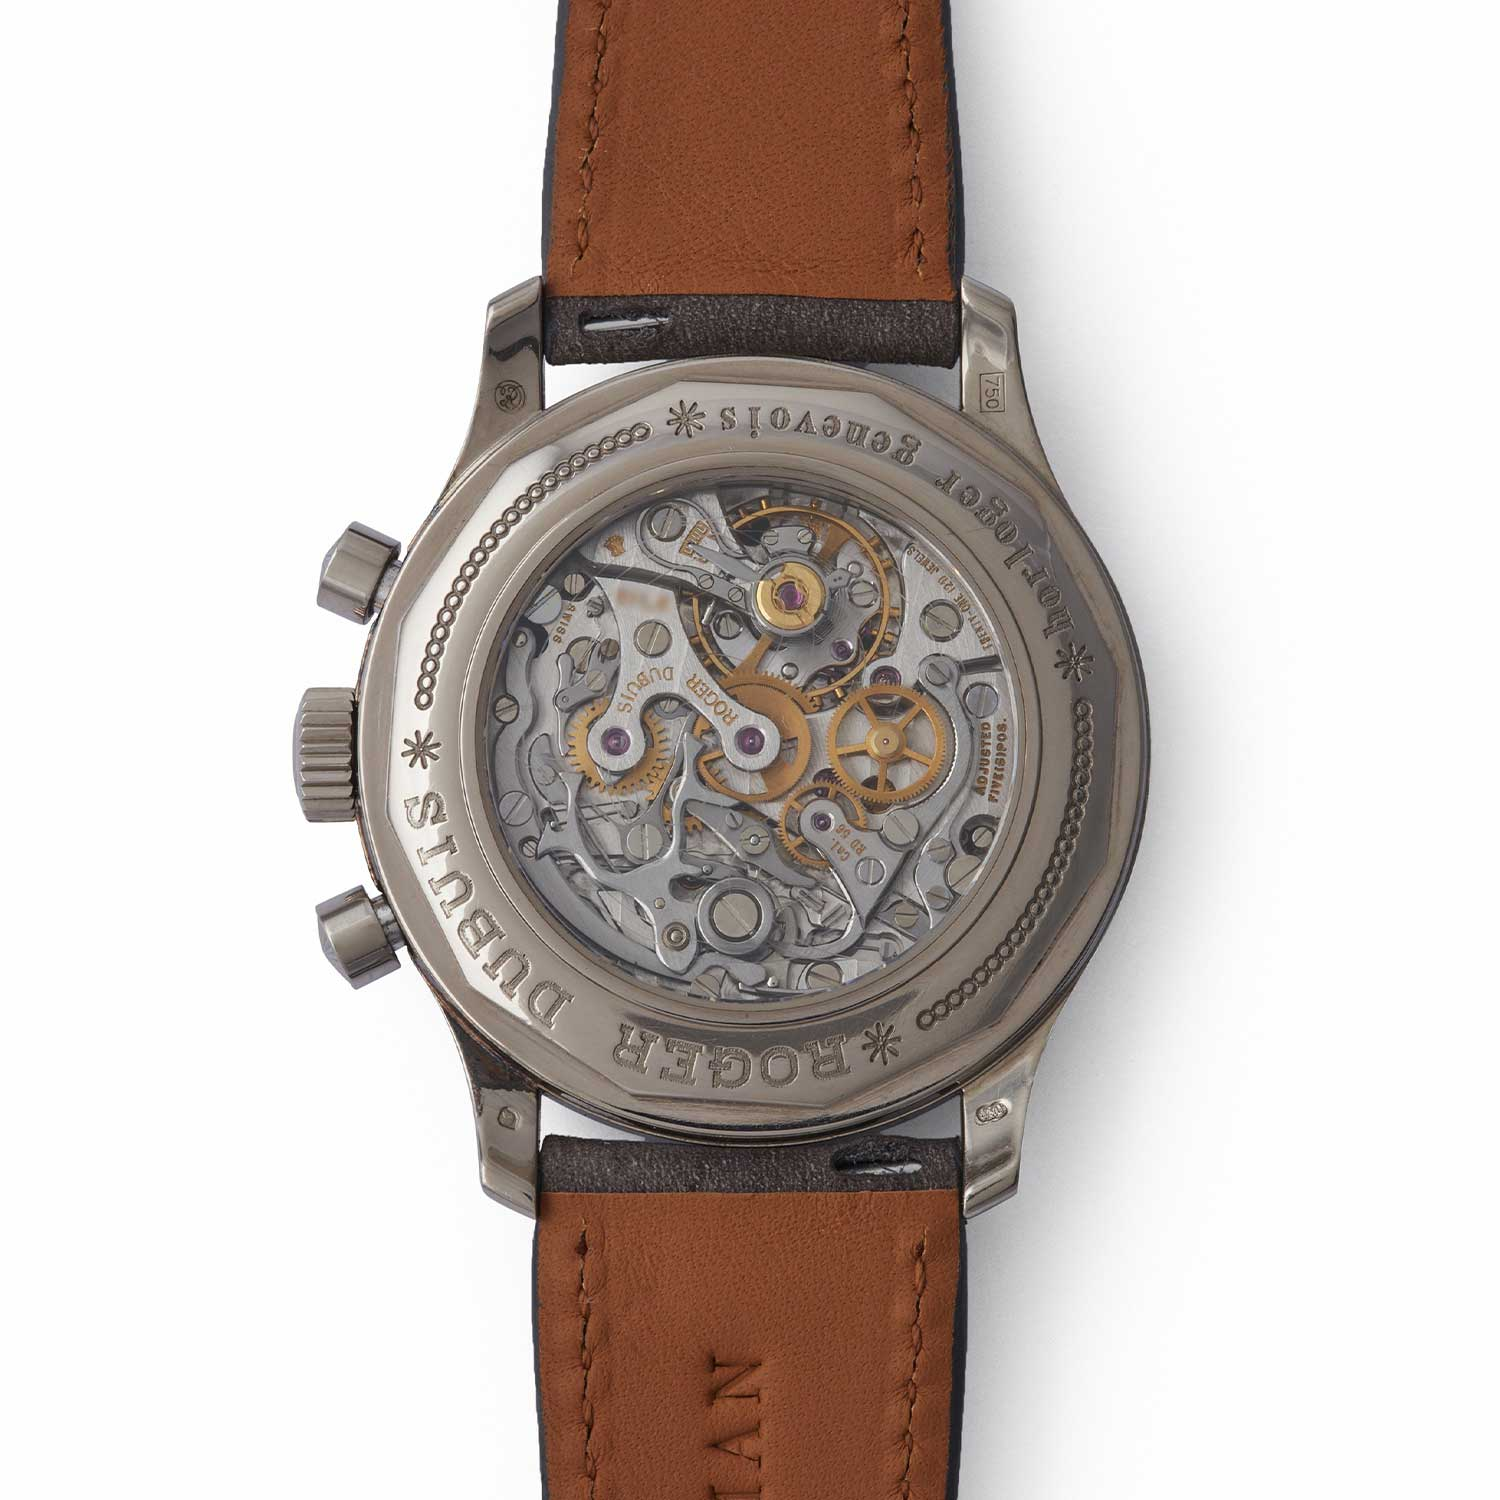 Caseback view of the Roger Dubuis Hommage Chronograph showcasing the Lemania-based manual-winding Cal. RD 56 (Image: acollectedman.com)